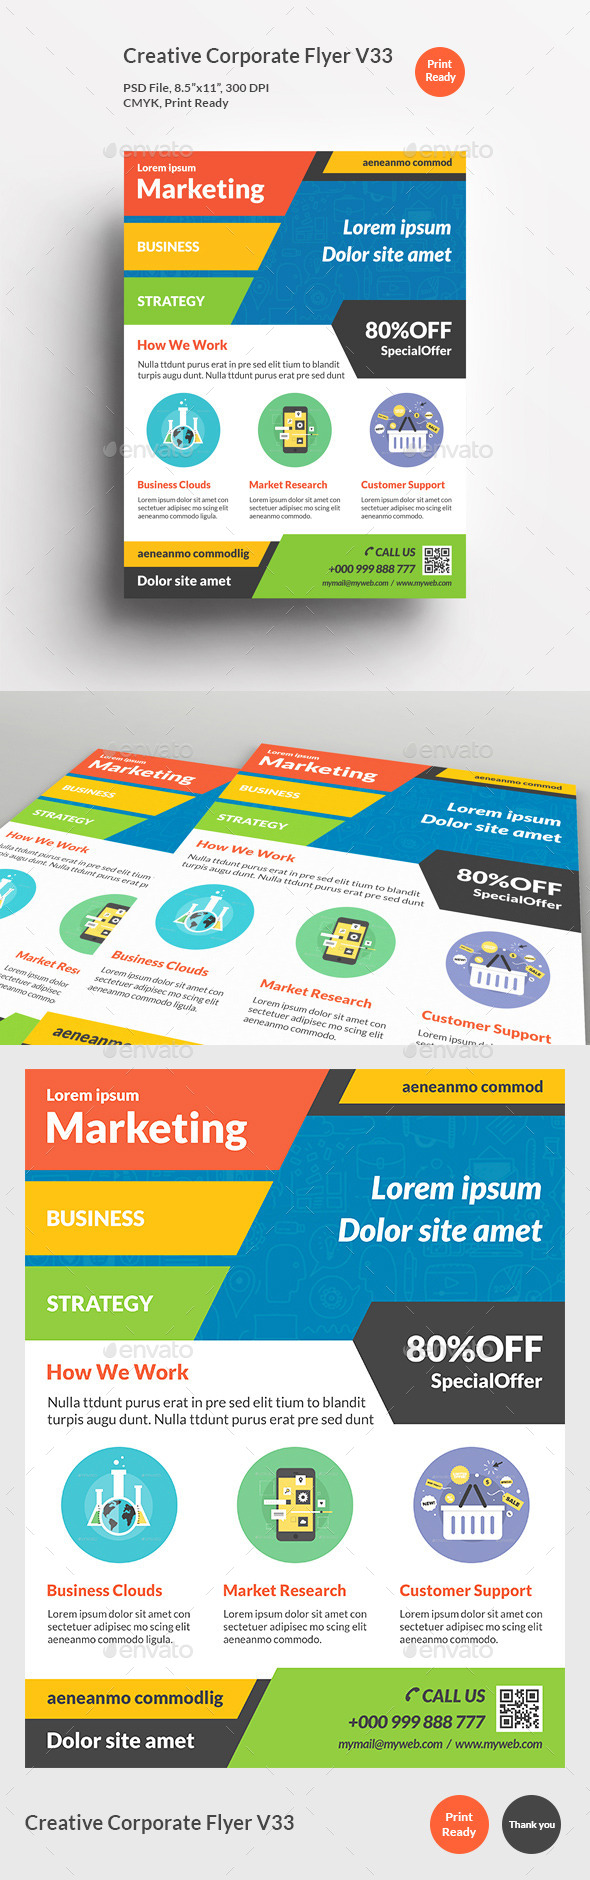 Creative Corporate Flyer V33 - Corporate Flyers